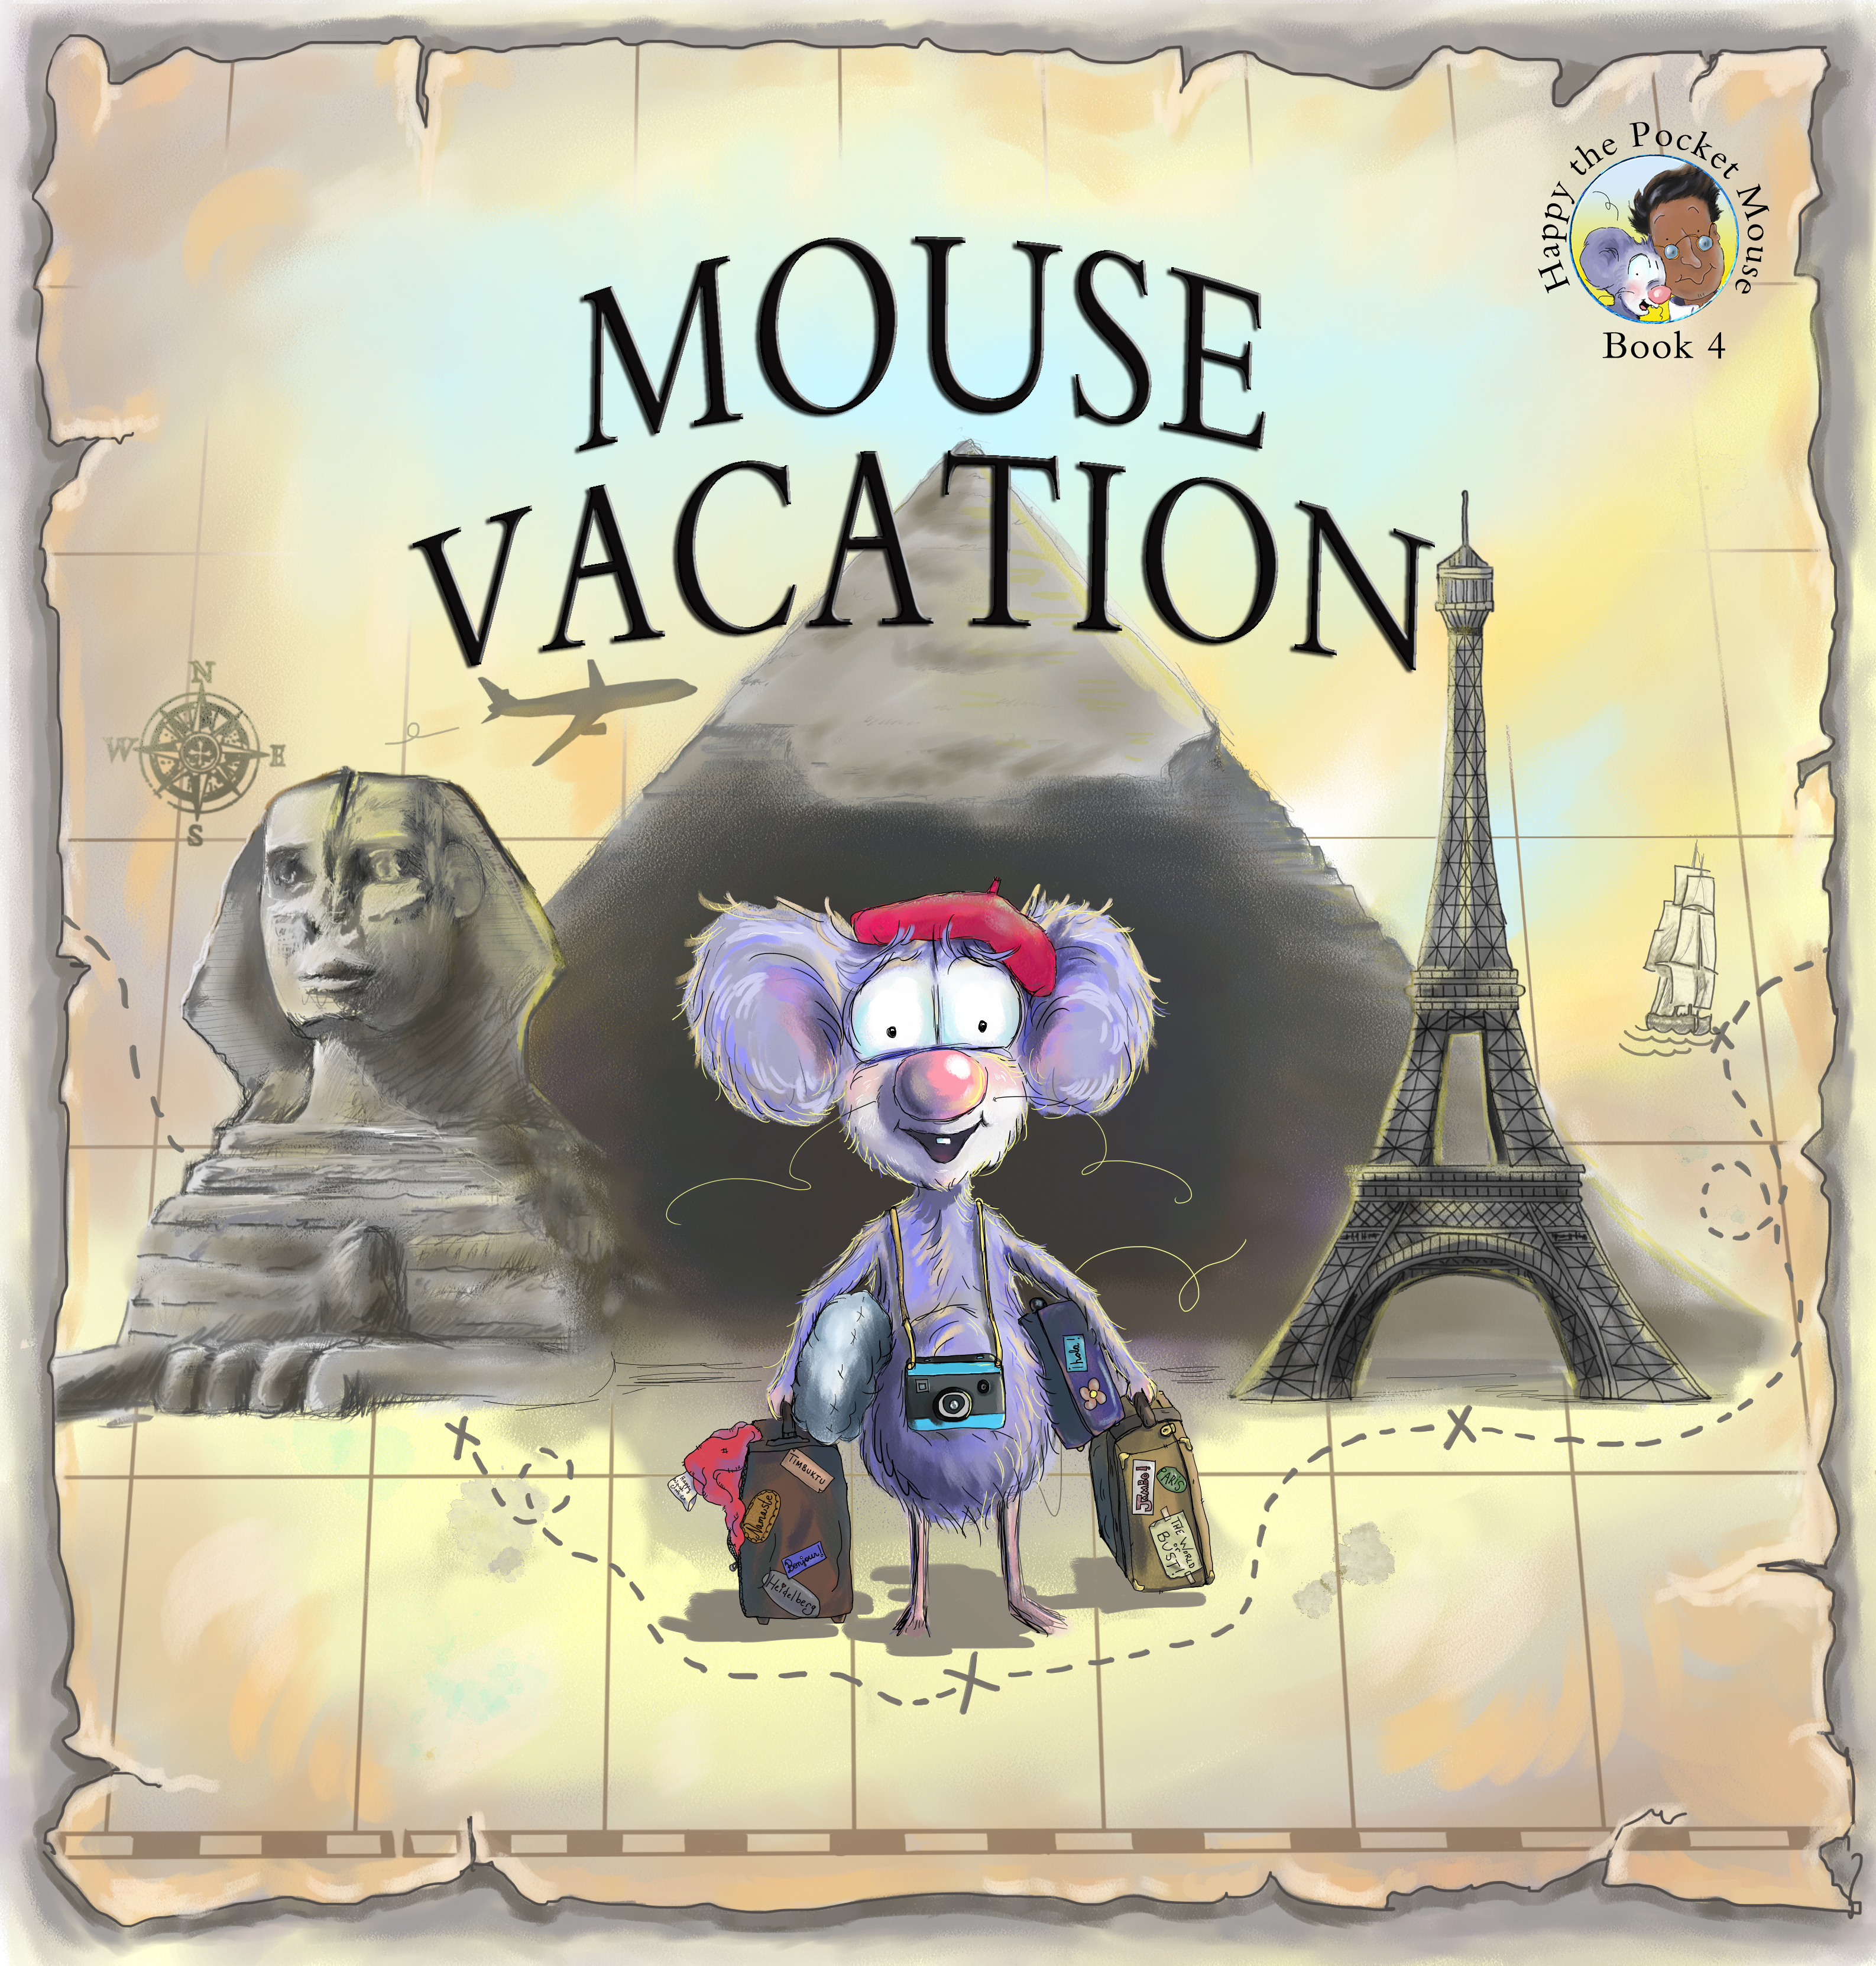 Mouse Vacation, (book 4 In The Happy The Pocket Mouse Series), Ronsdale  Press, Vancouver, 2016 Isbn: 9781553804796